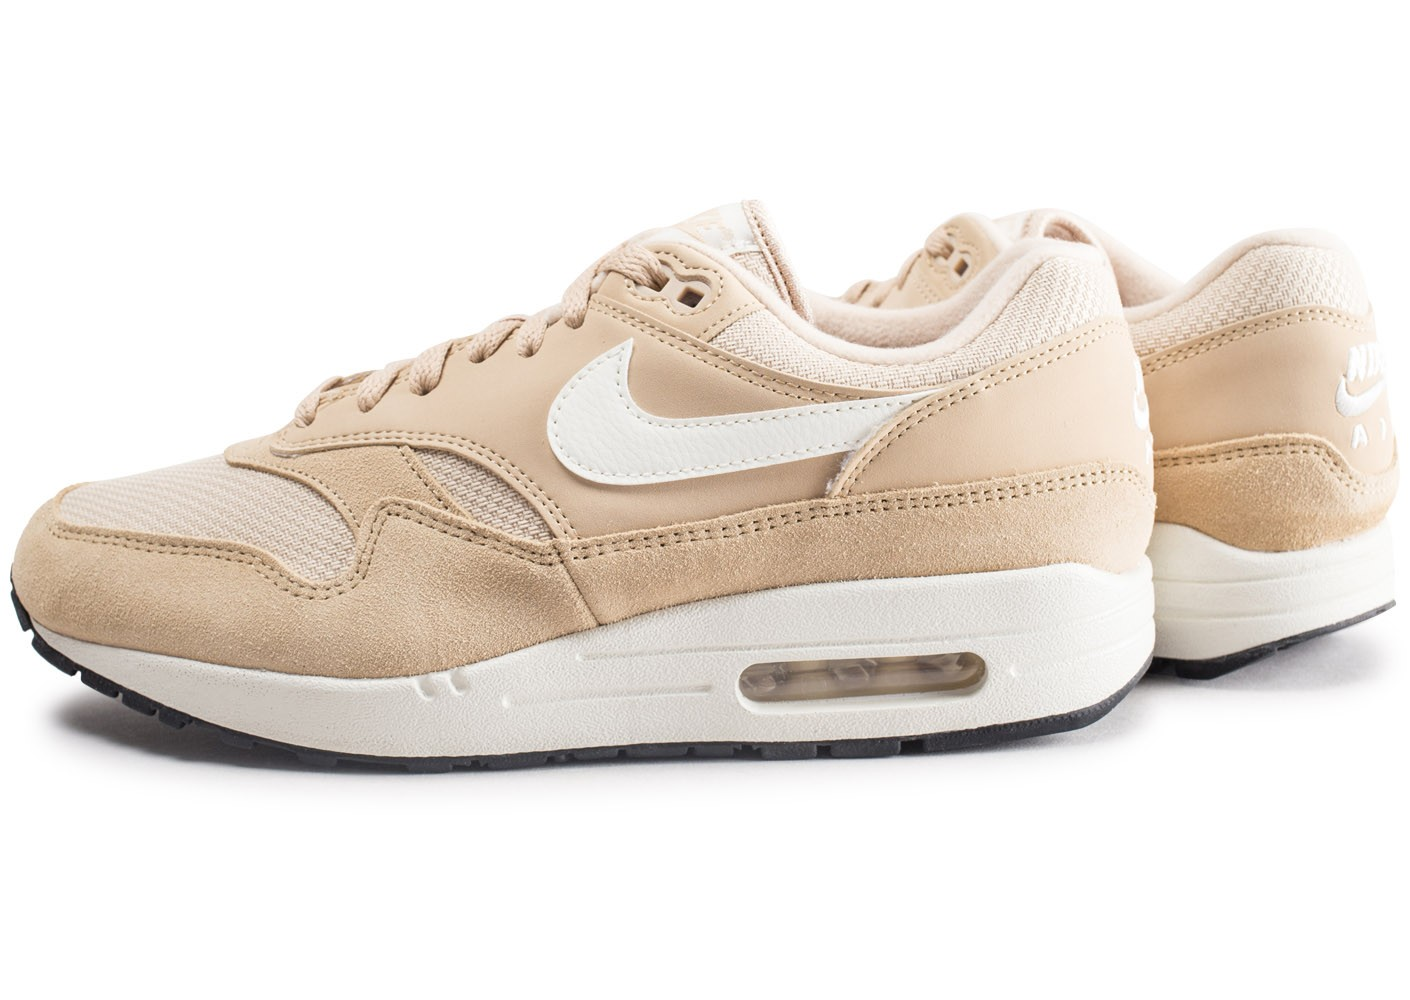 Baskets Chausport Nike Homme 1 Air Max Chaussures Beige fv6Y7gby